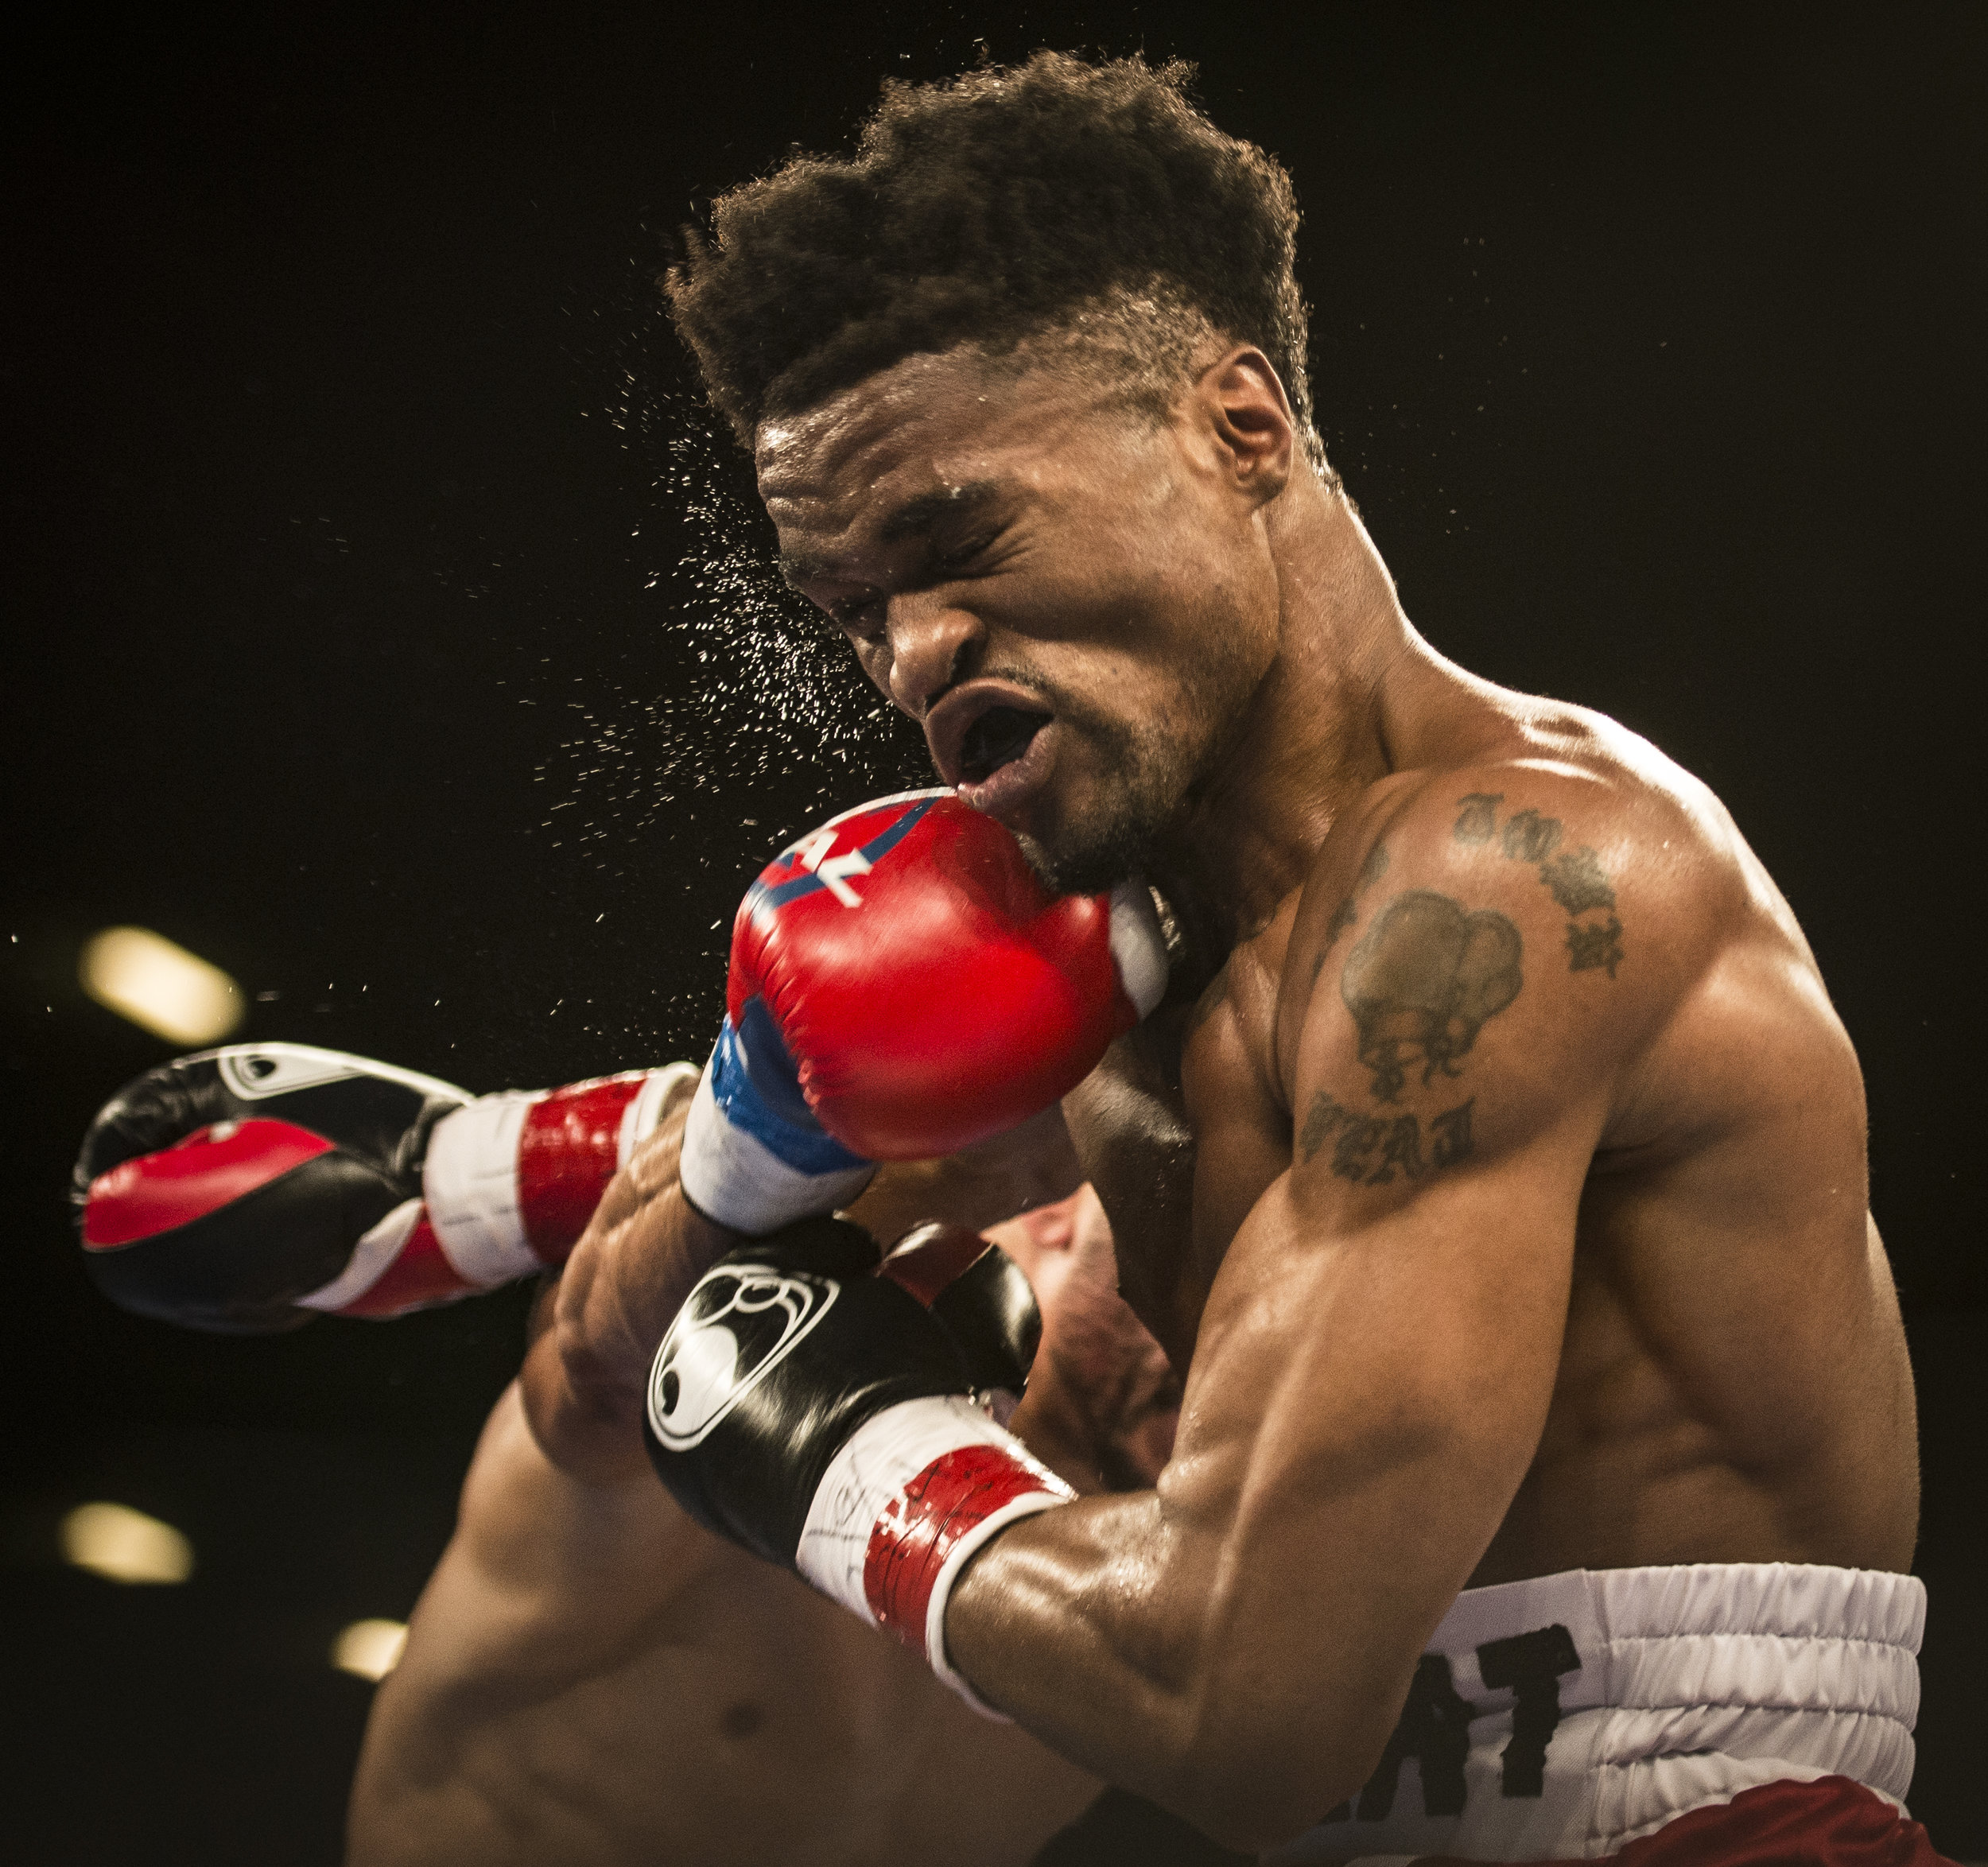 Alex Martin receives a hard punch by Robert Daniels Jr. during their bout at Hialeah Casino Park.